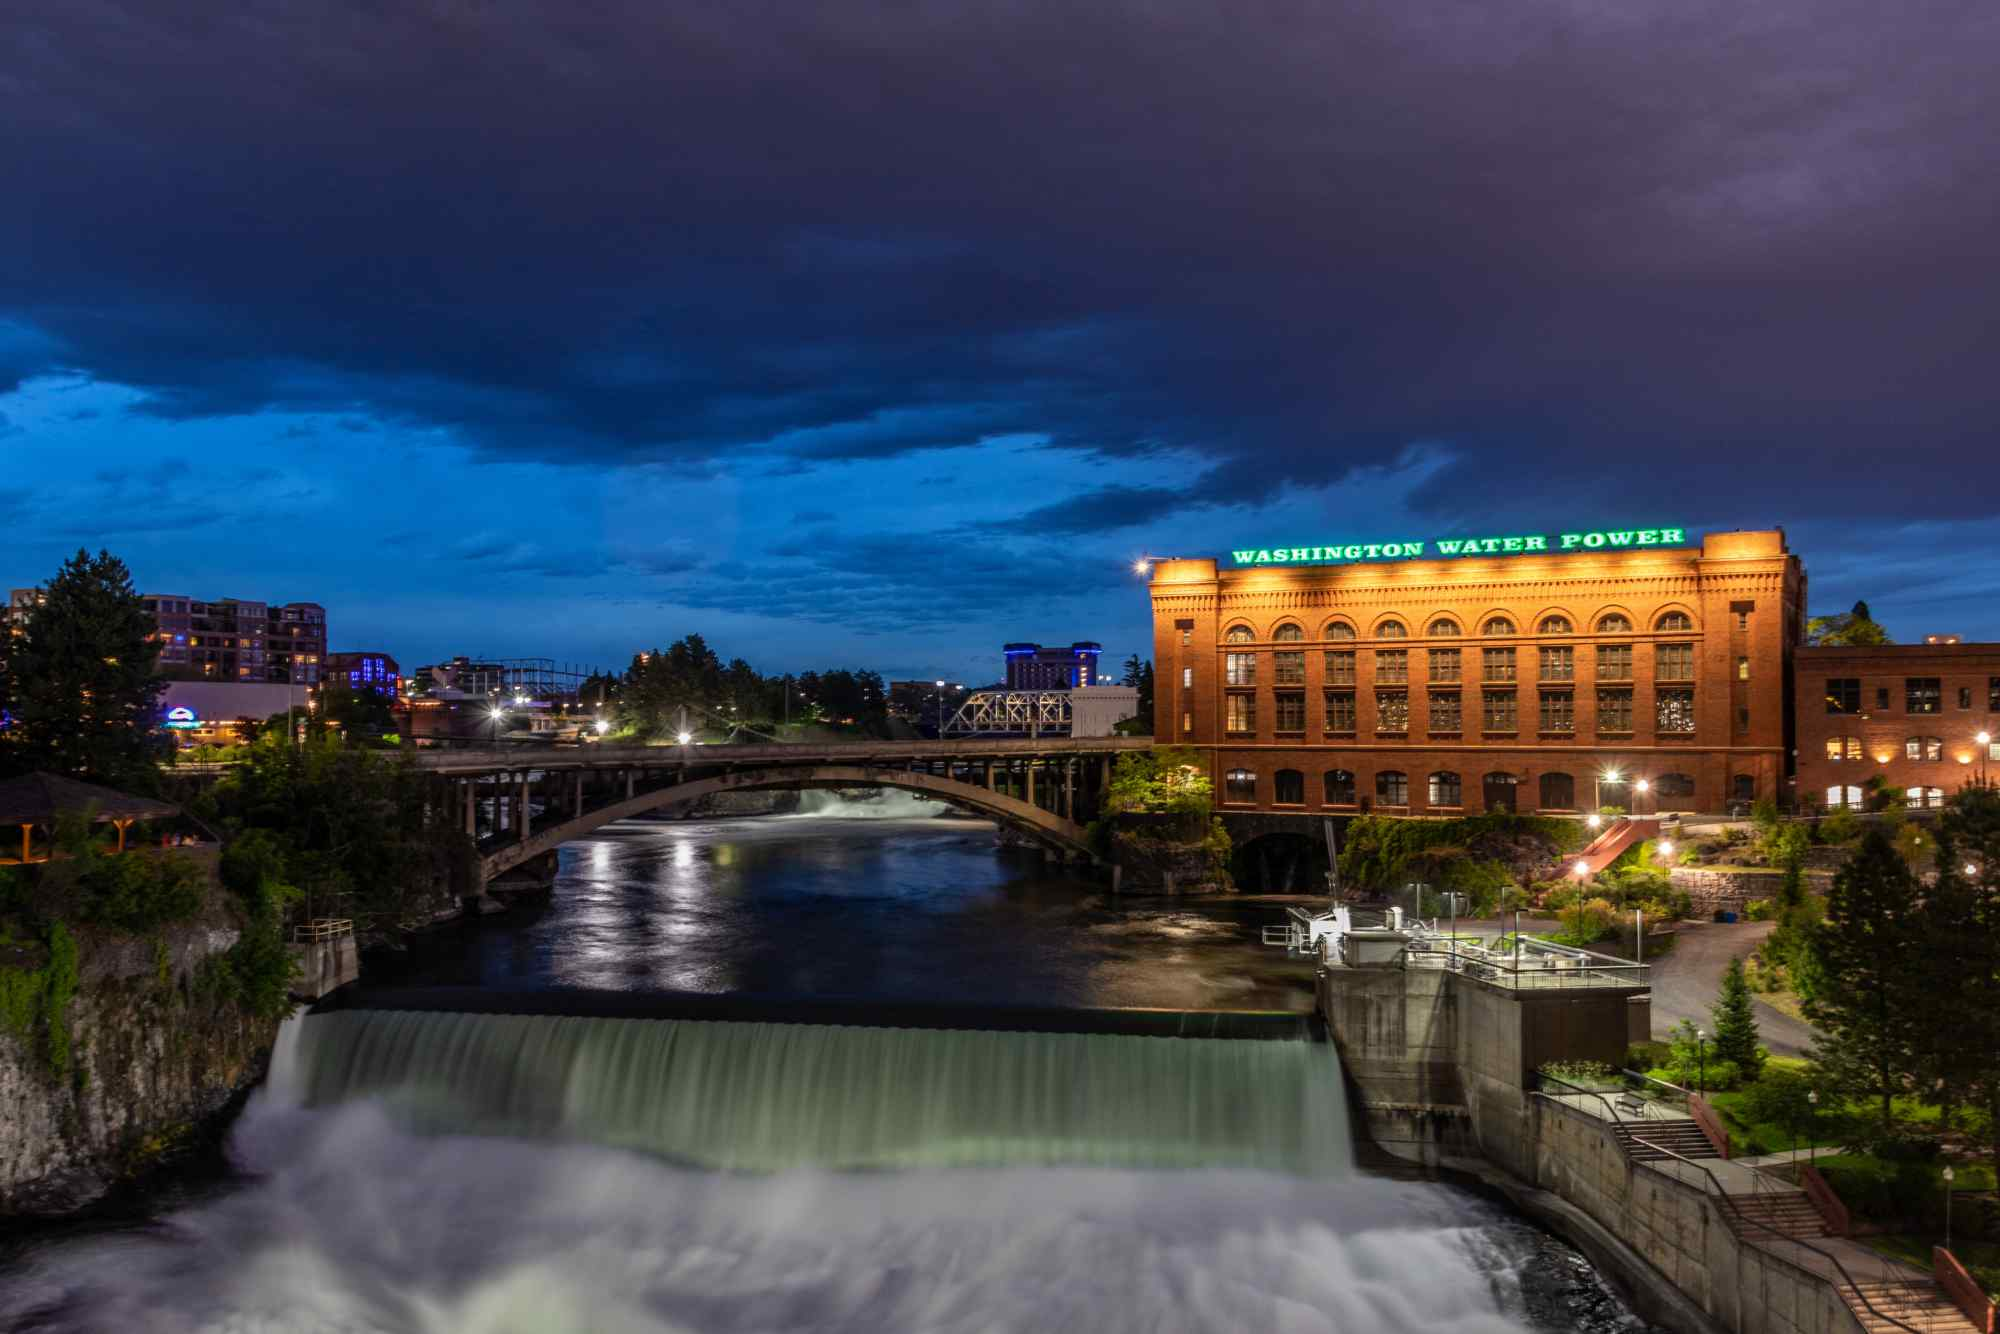 Night view of Washington Water Power building and river